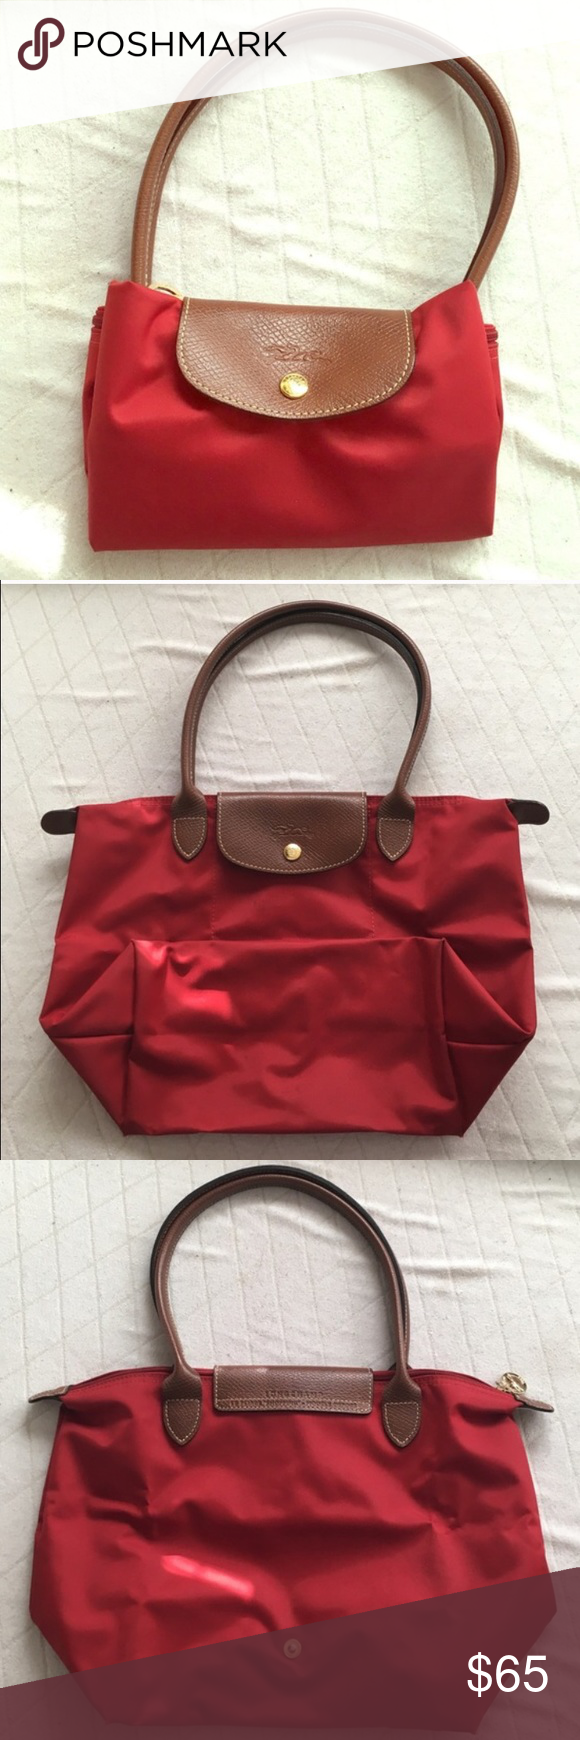 Longchamp Le Pliage small tote Bought from original Longchamp store in Paris. Minor wear from 2 uses. This bag is in great condition!! Longchamp Bags Shoulder Bags